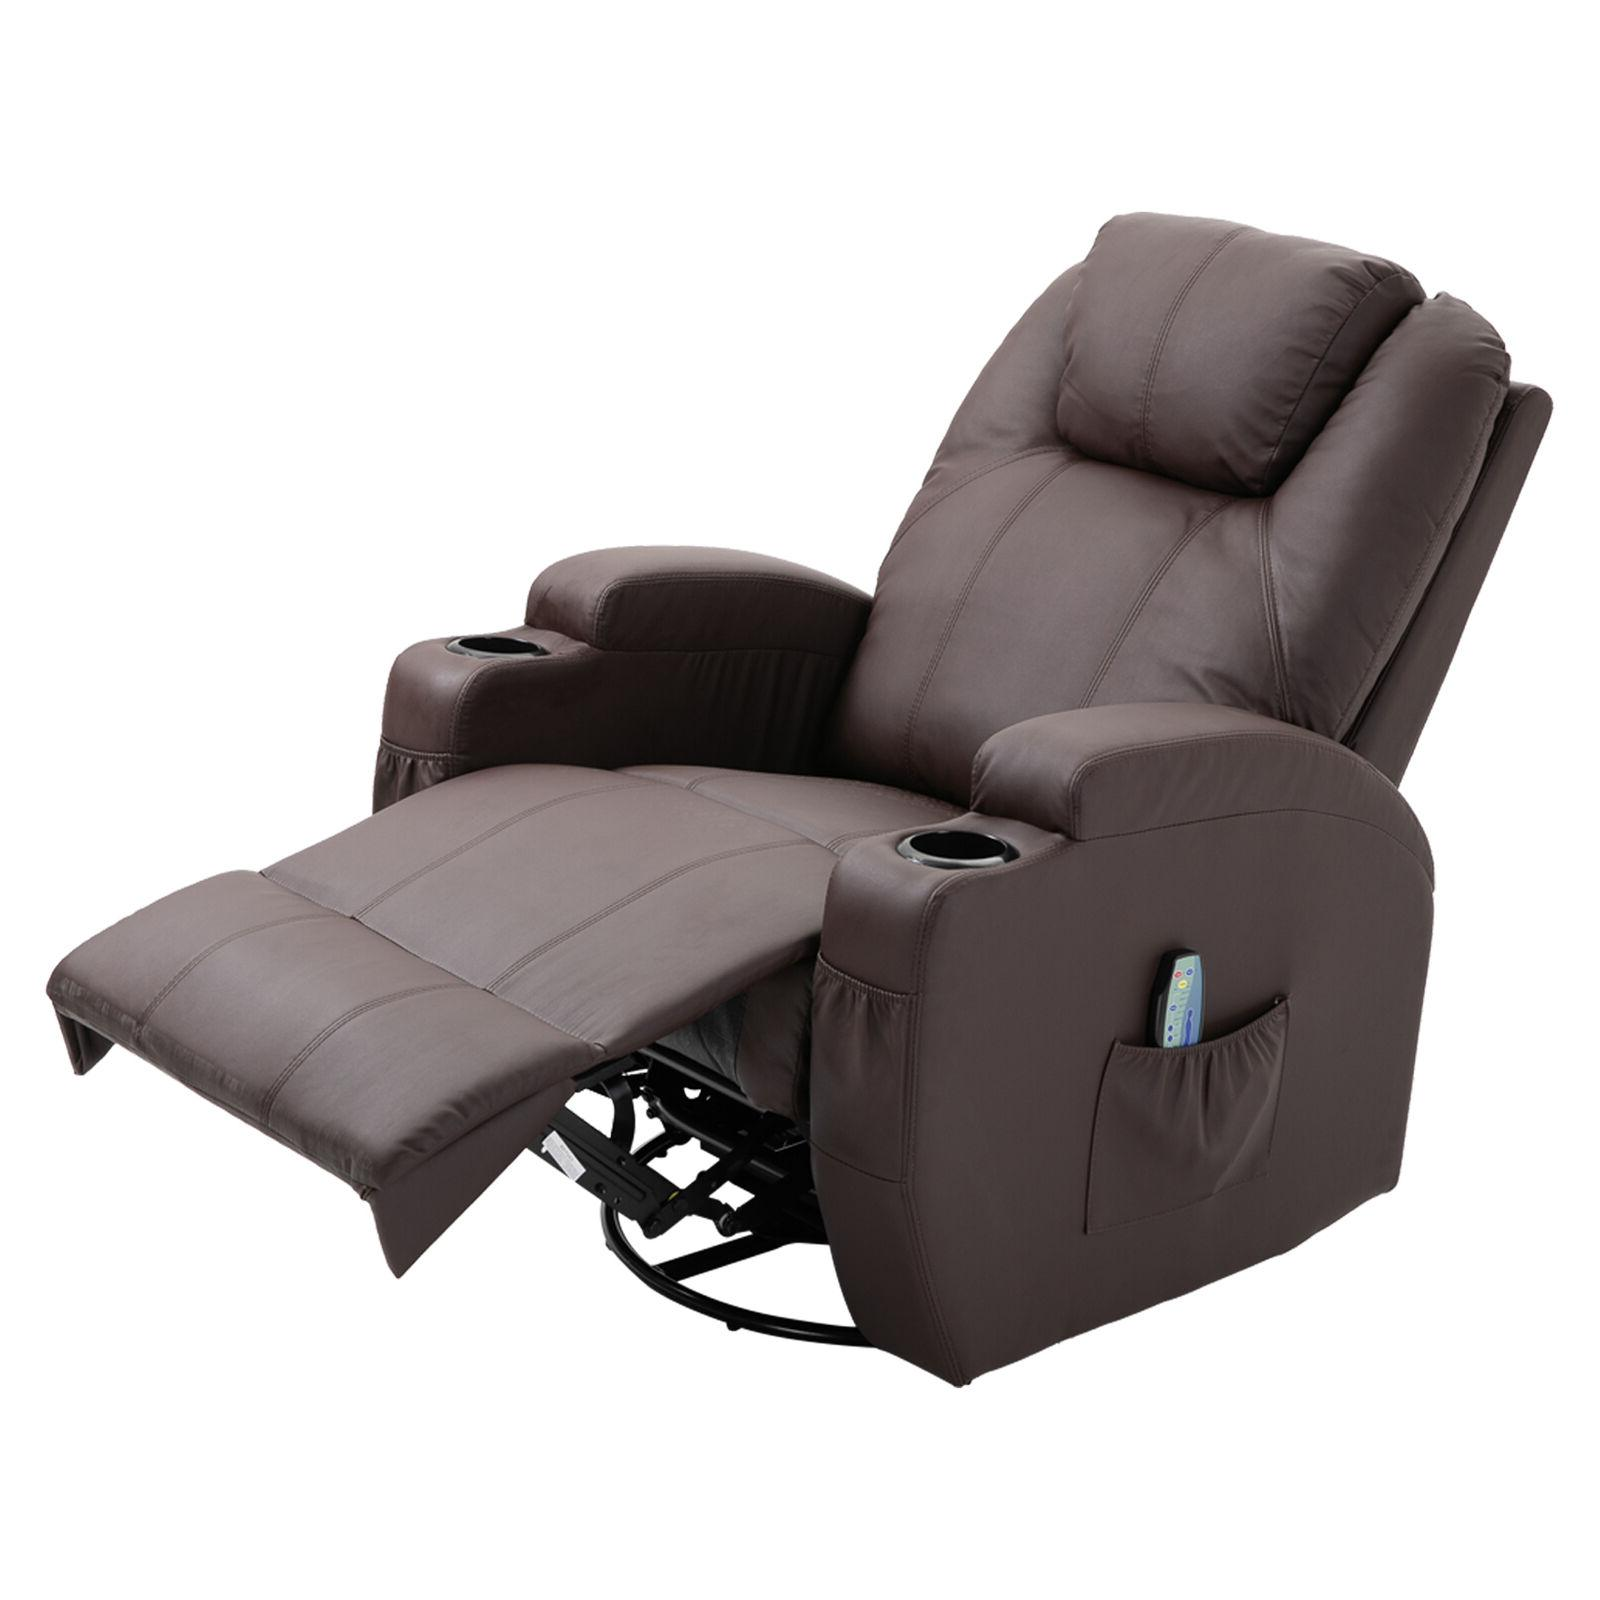 Massage Vibrating Heated Chair Lounge with